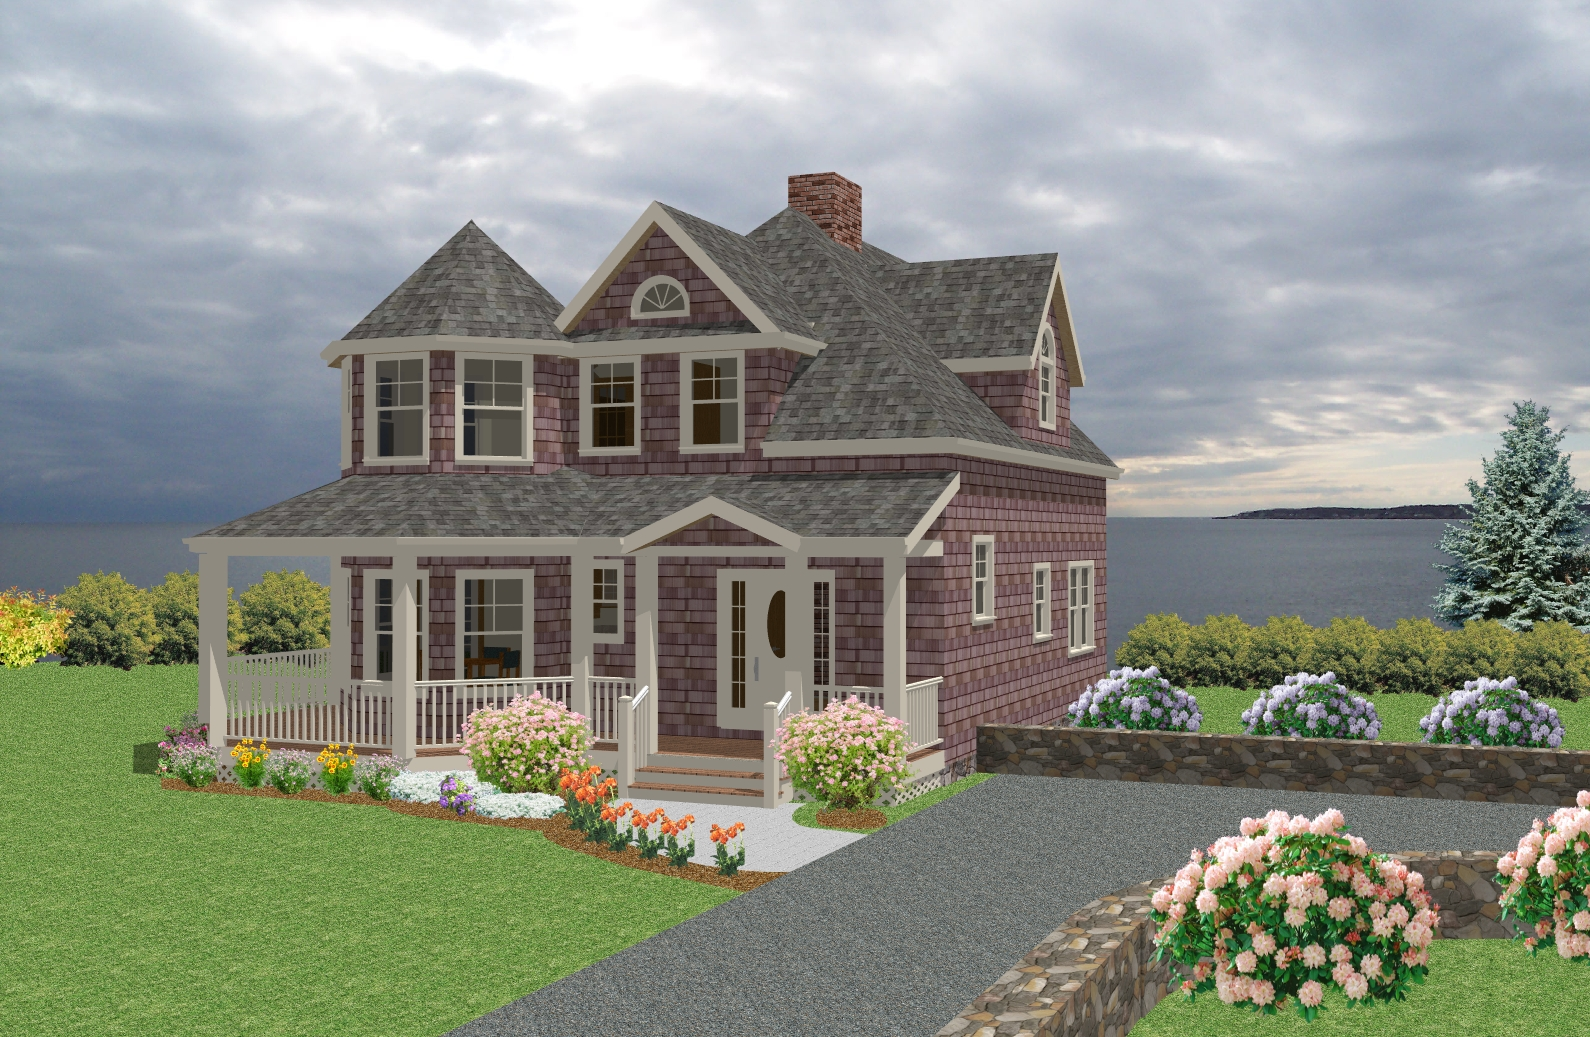 seaside cottage traditional house plan new england On seaside cottage plans